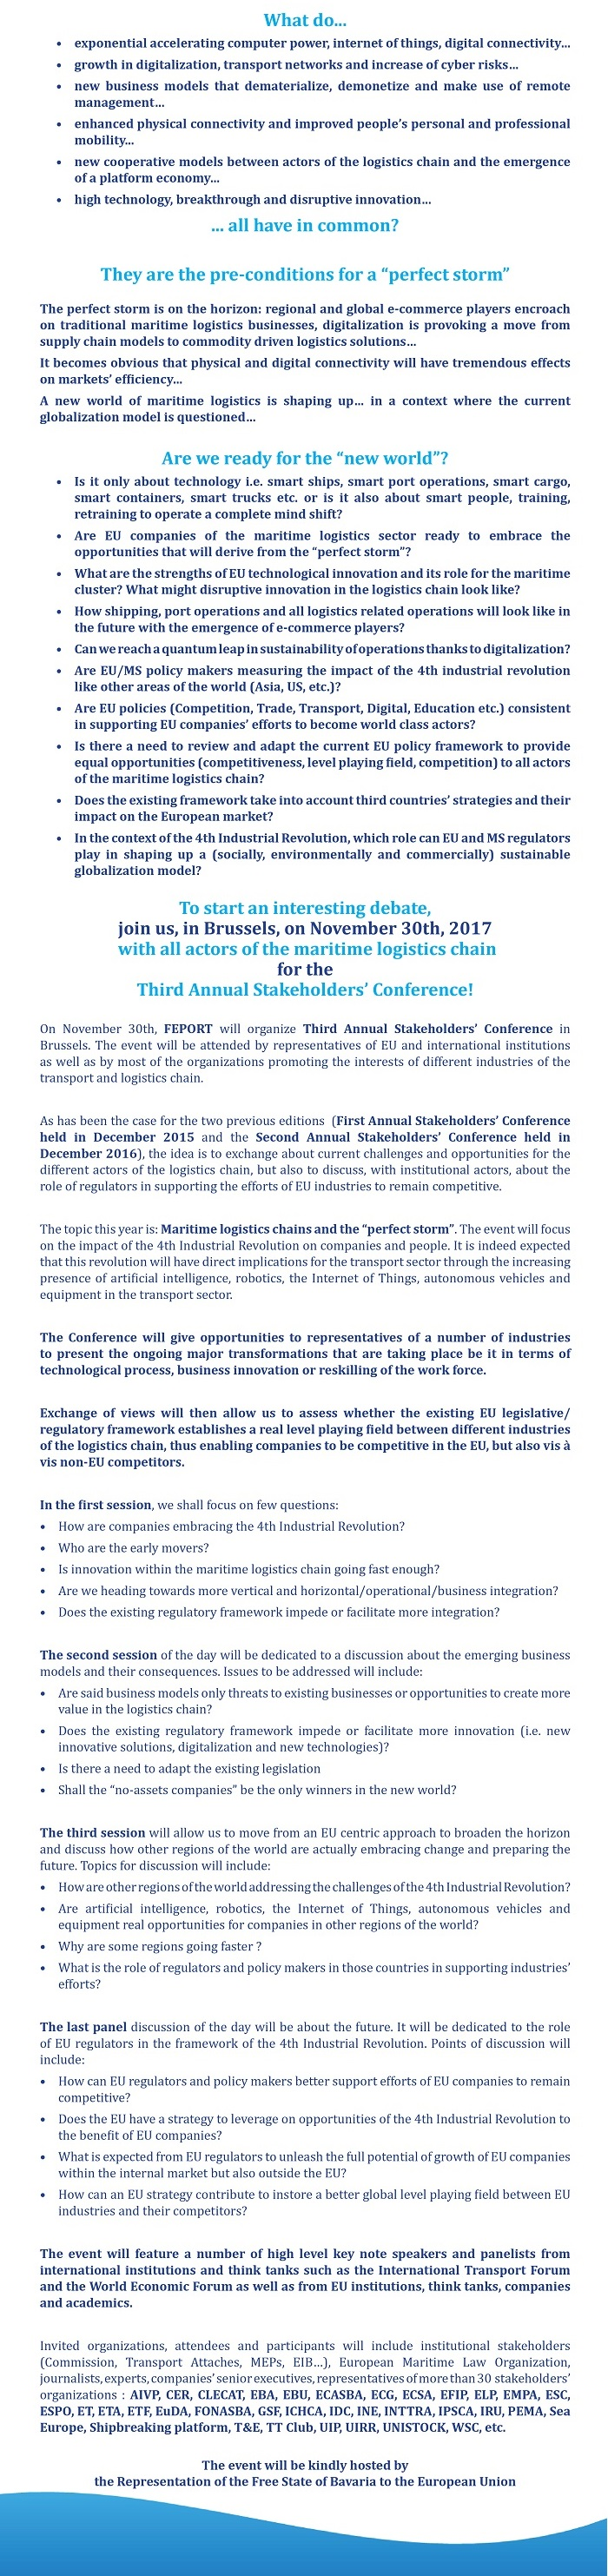 Web description Third Annual Stakeholders Connference Brussels November 30th 2017 v.26.09.2017just description